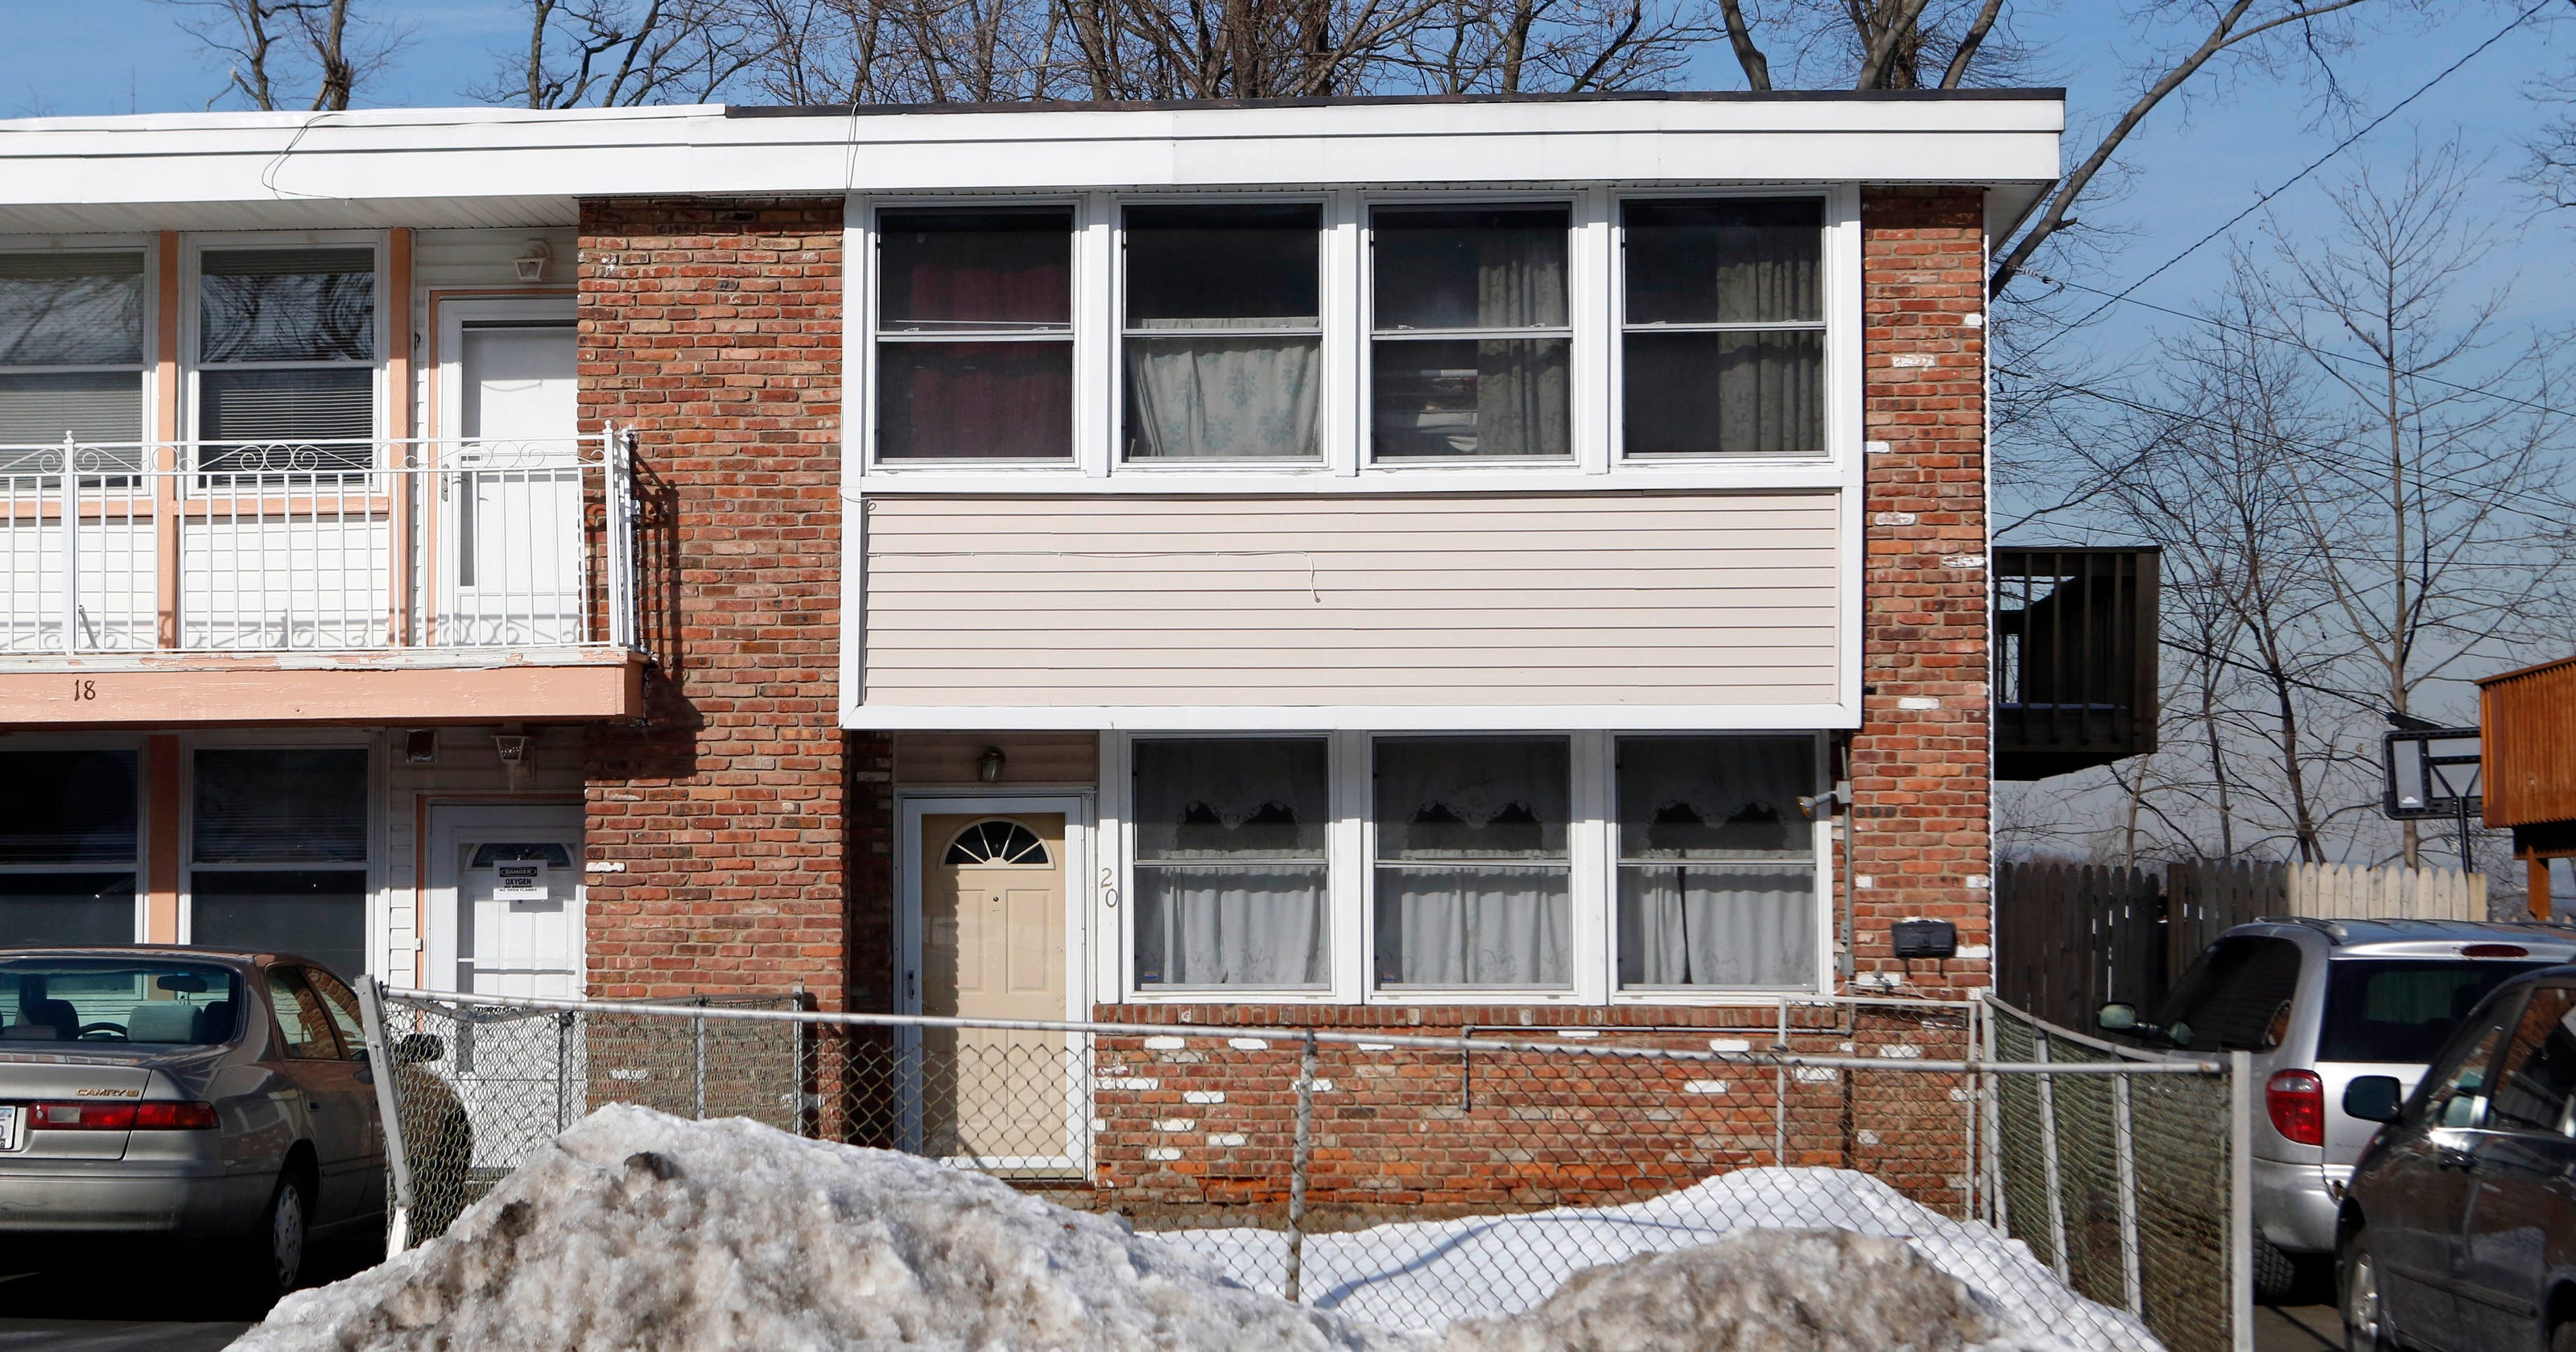 HACSO First Time Home Buyer Program begins March 17